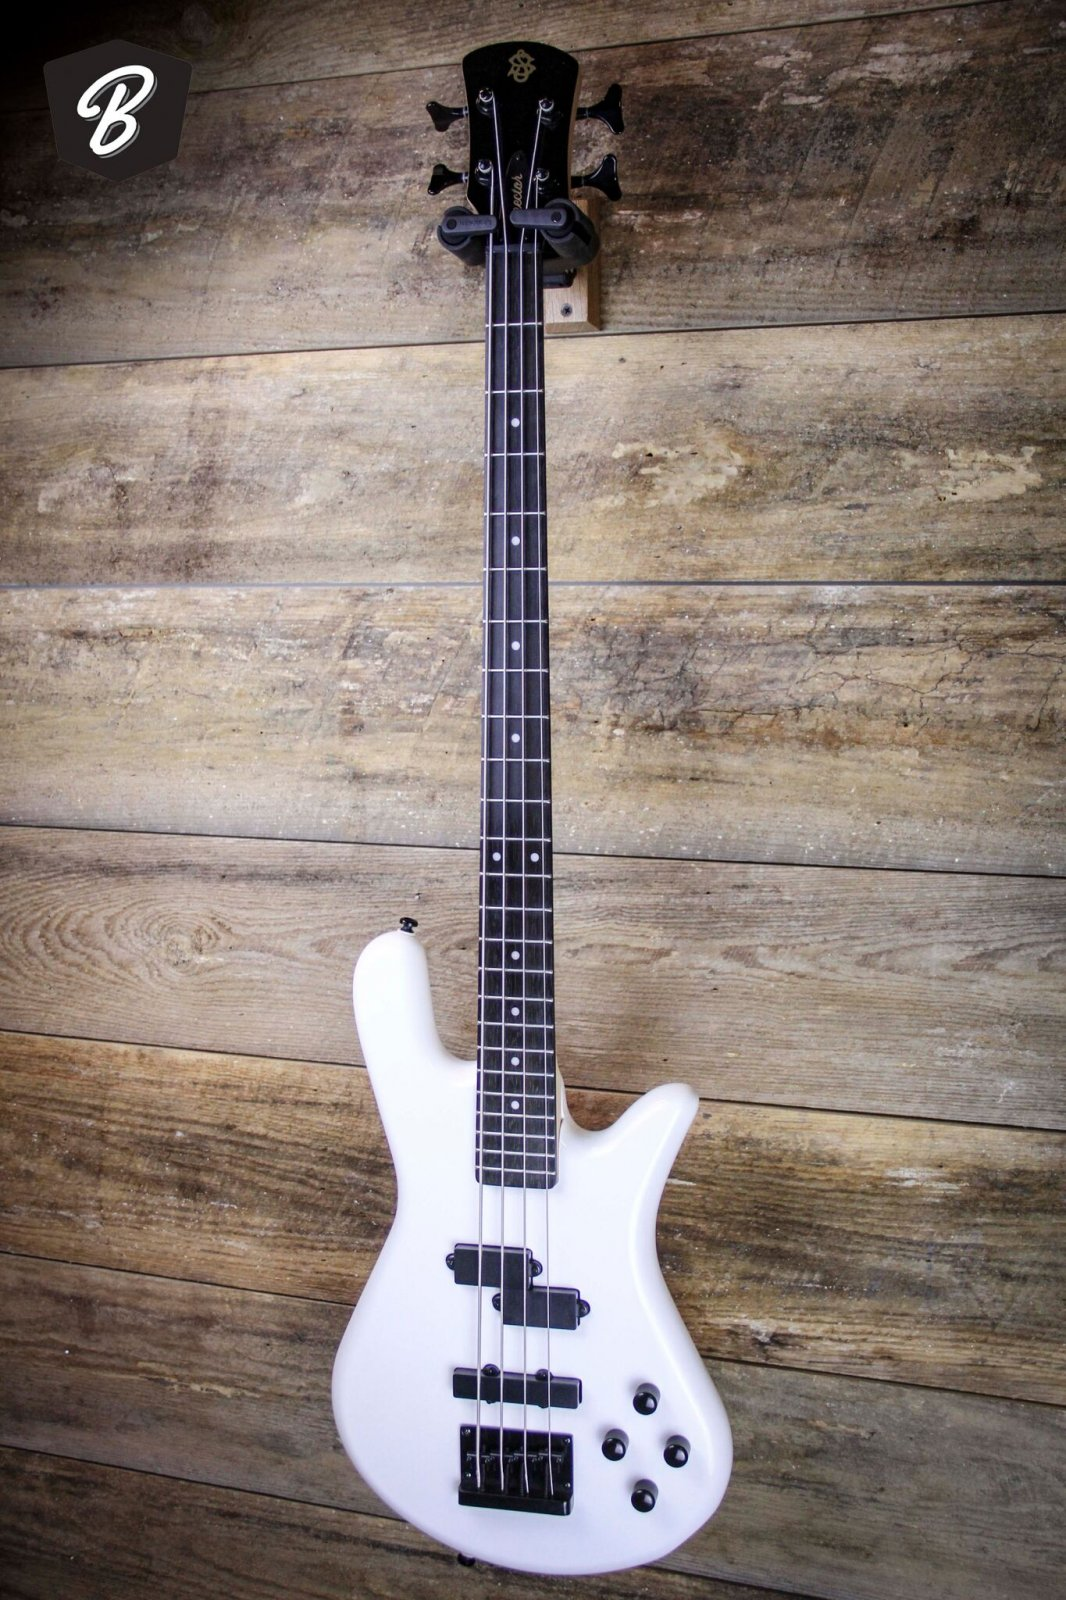 Spector Performer 4 in Solid White Gloss